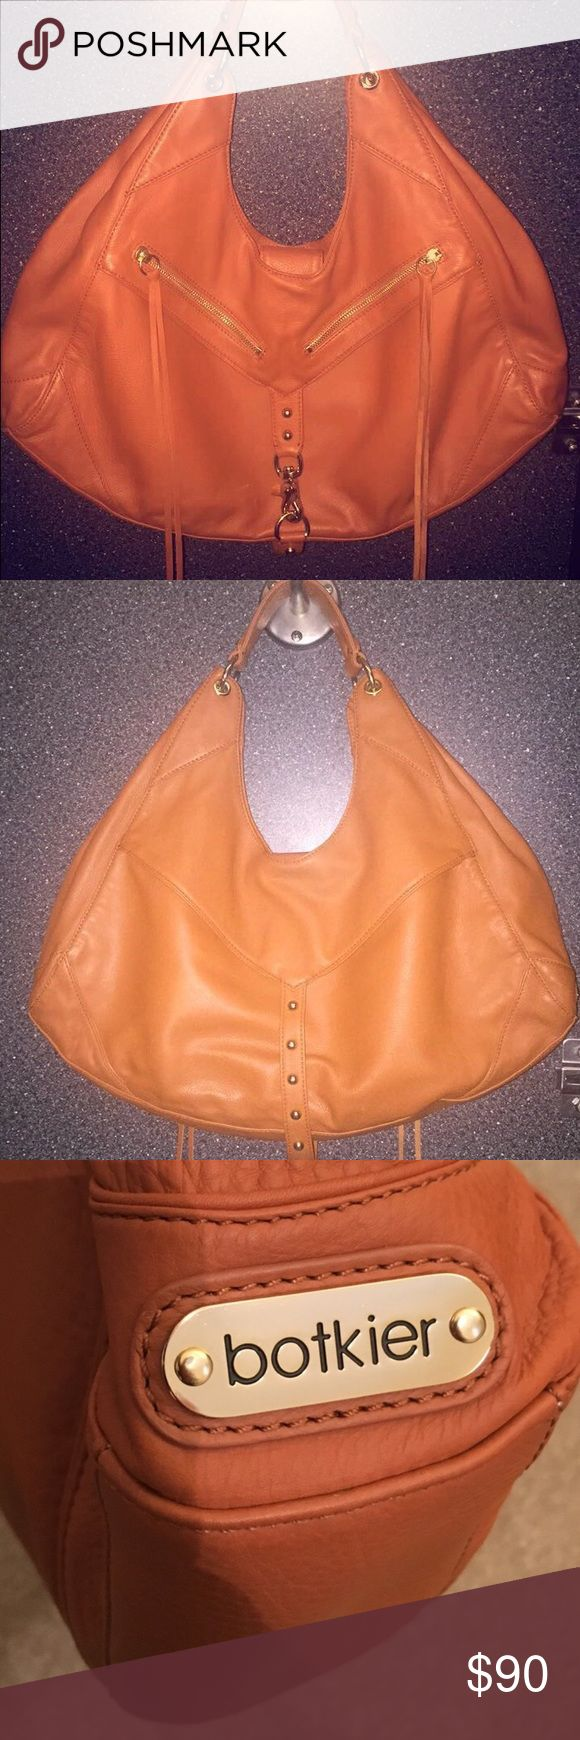 Botiker Large Leather shoulder slouch bag Excellent Condition adorn with tassels and gold buckle! Retails 475 Botkier Bags